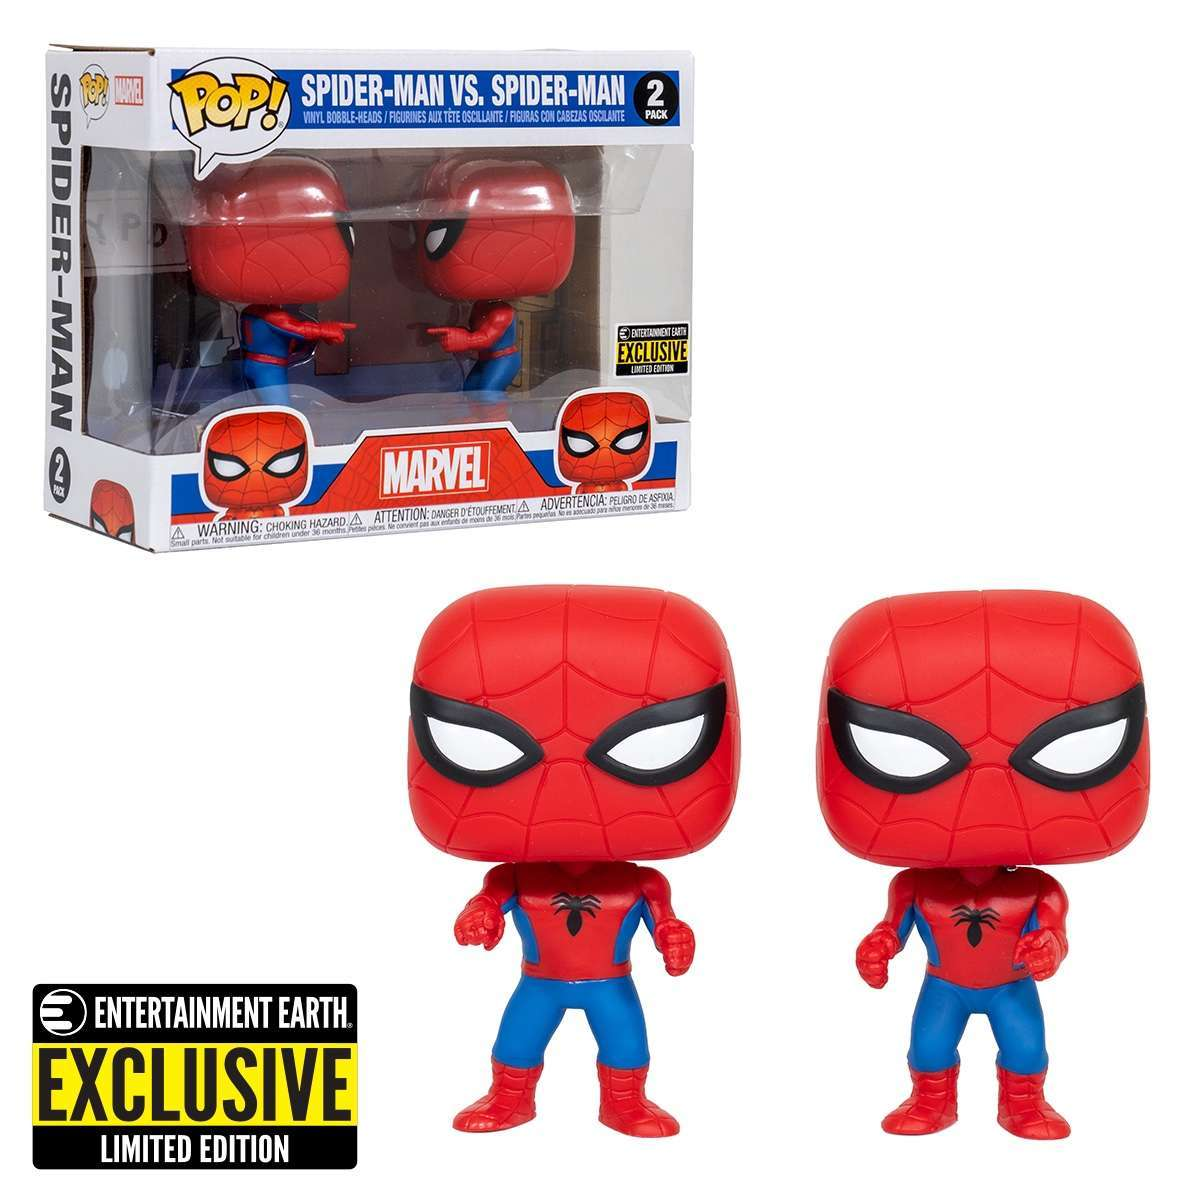 Funko S Spider Man Impostor Pop 2 Pack Exclusive Is Shipping Now